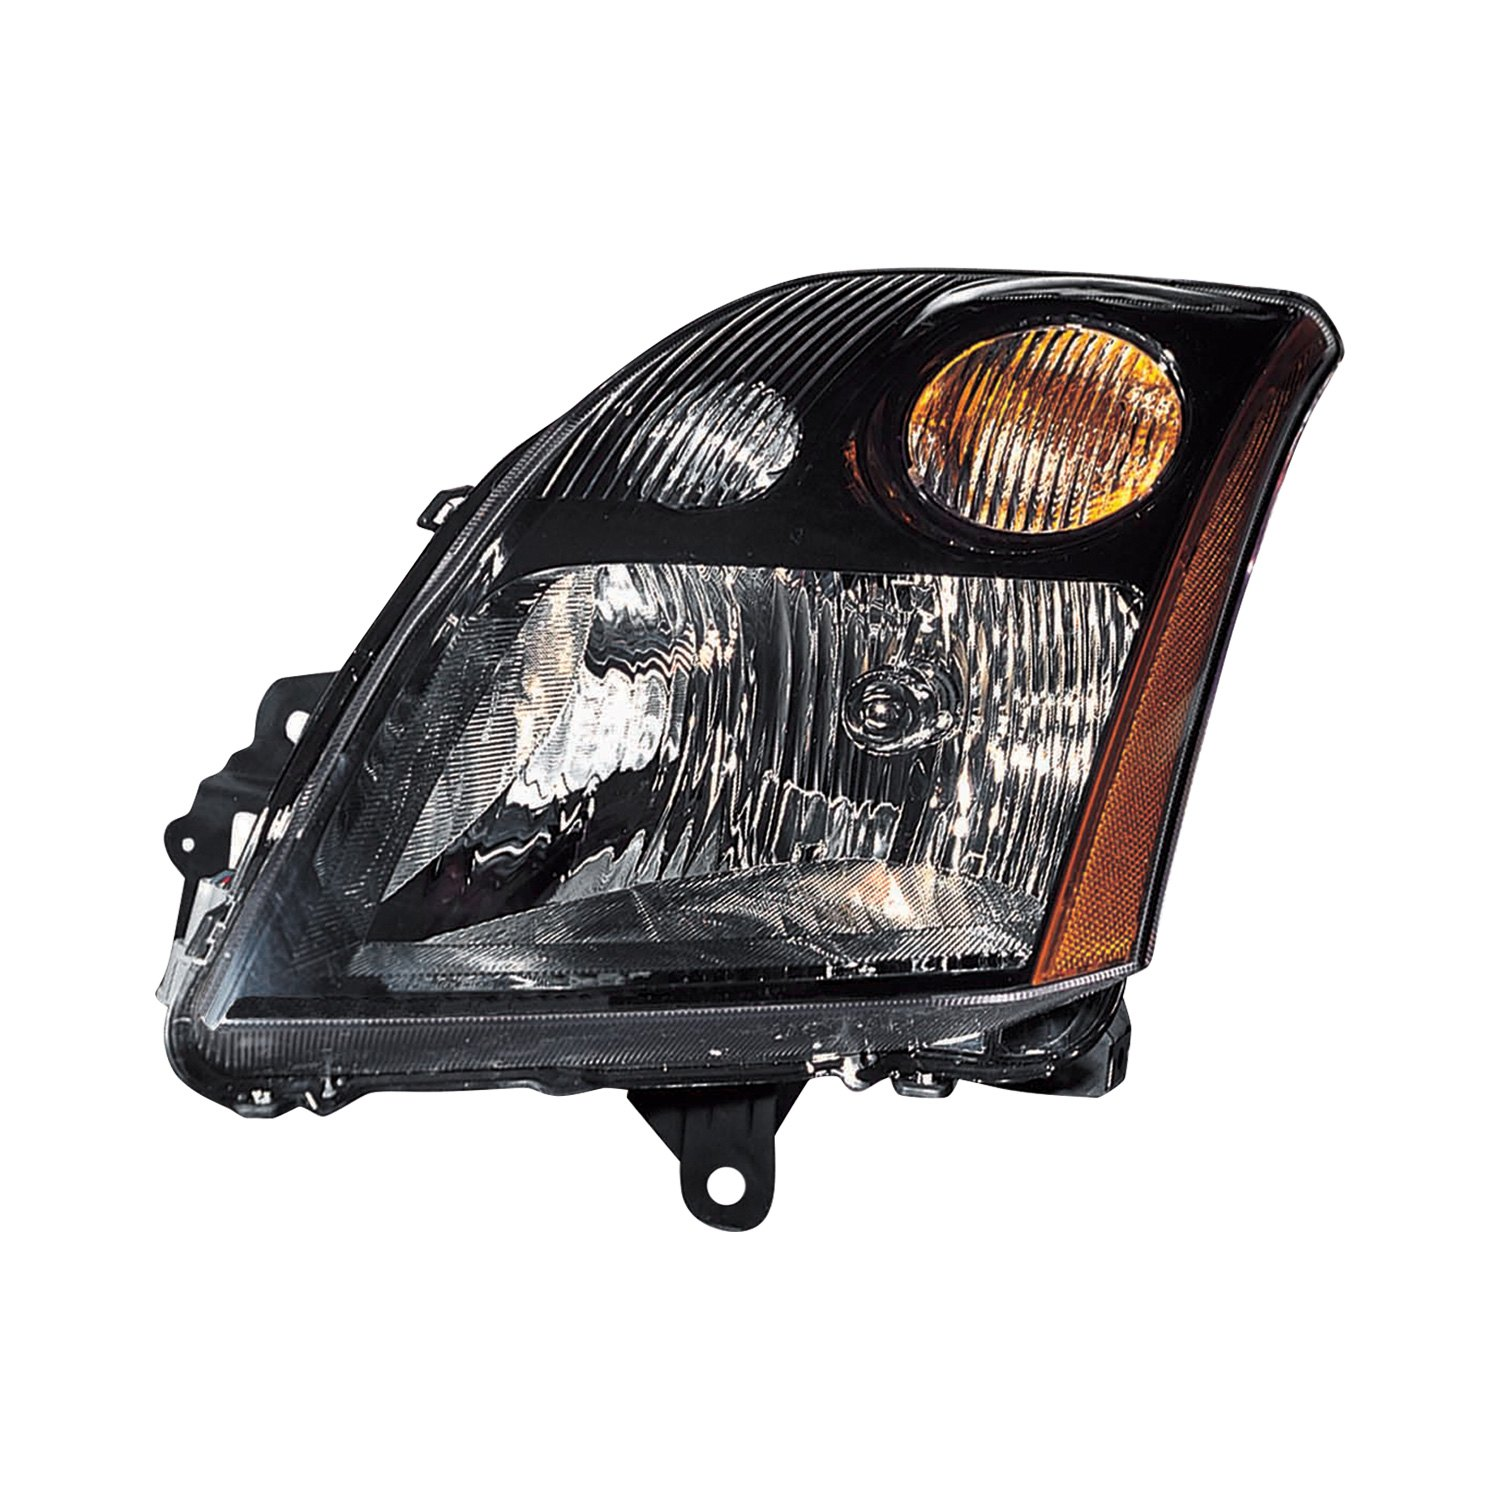 Driver and Passenger Side Headlights for 2007 2008 2009 Nissan Sentra 4-Door Models Headlamps Assembly Replacement with Black Housing